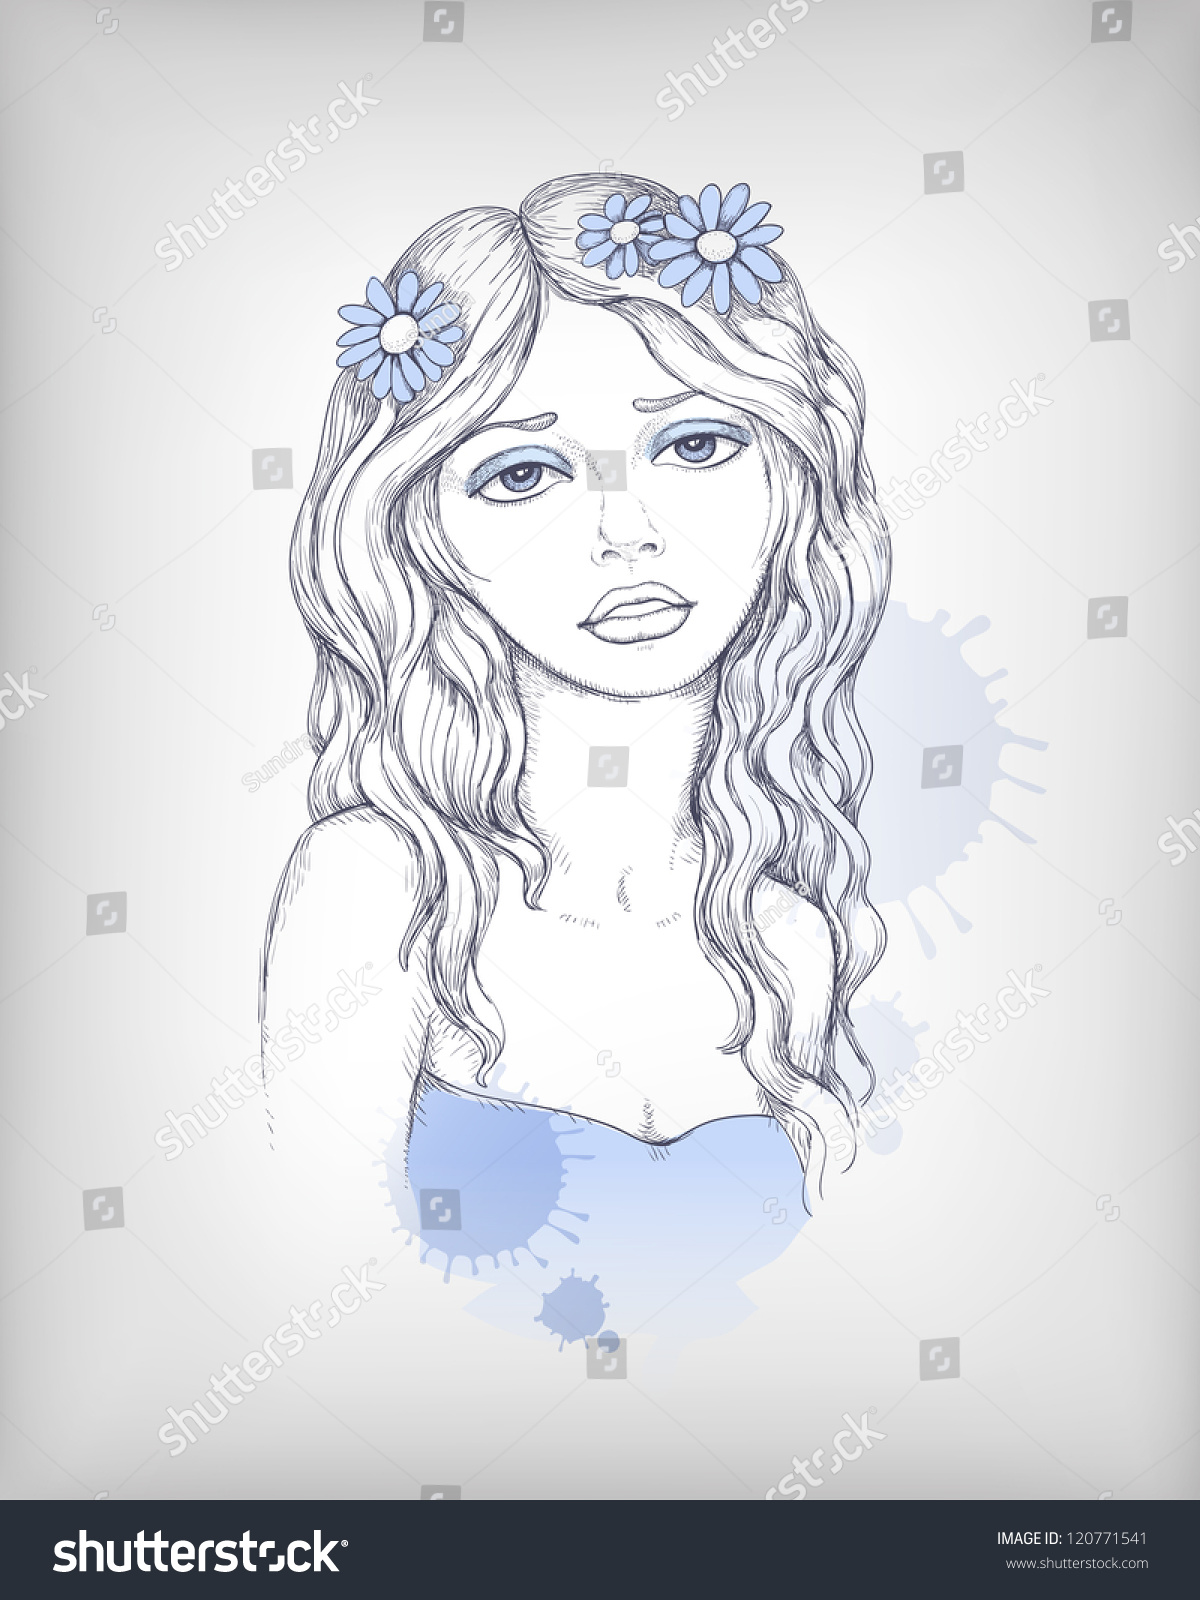 Vector fashion illustration of beautiful woman pencil drawing perfect for t shirt print